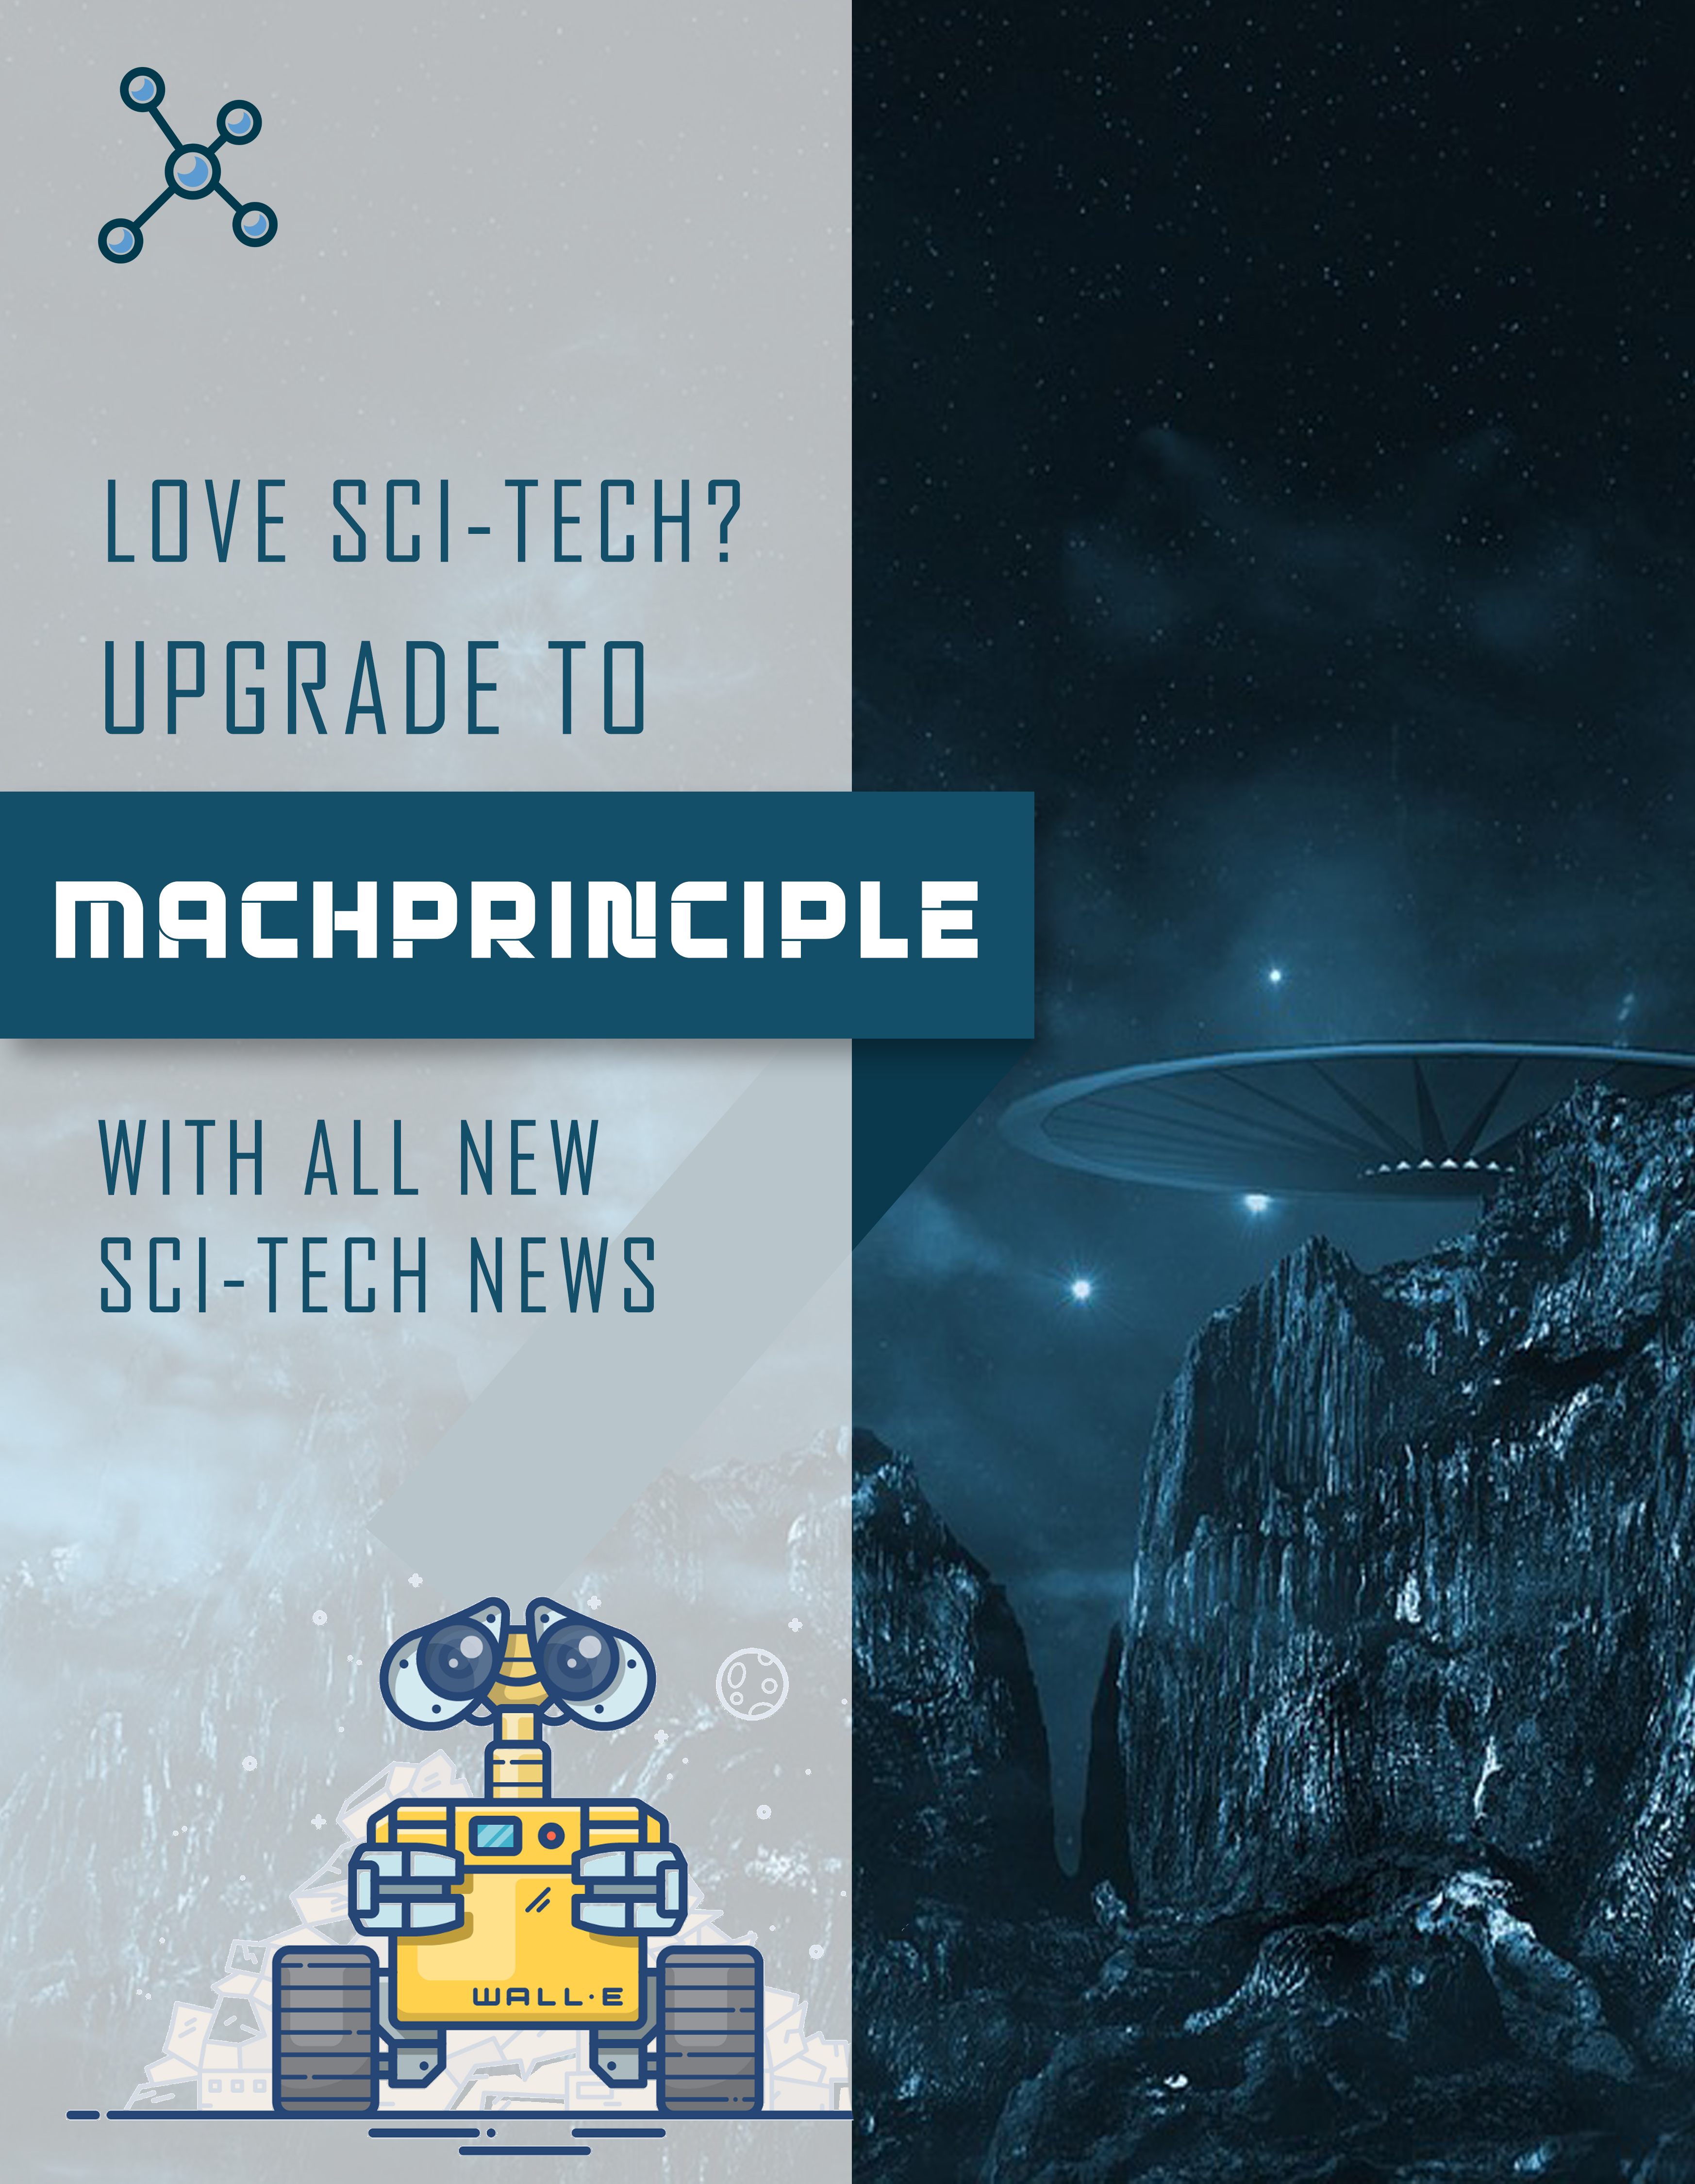 All new scitech stories